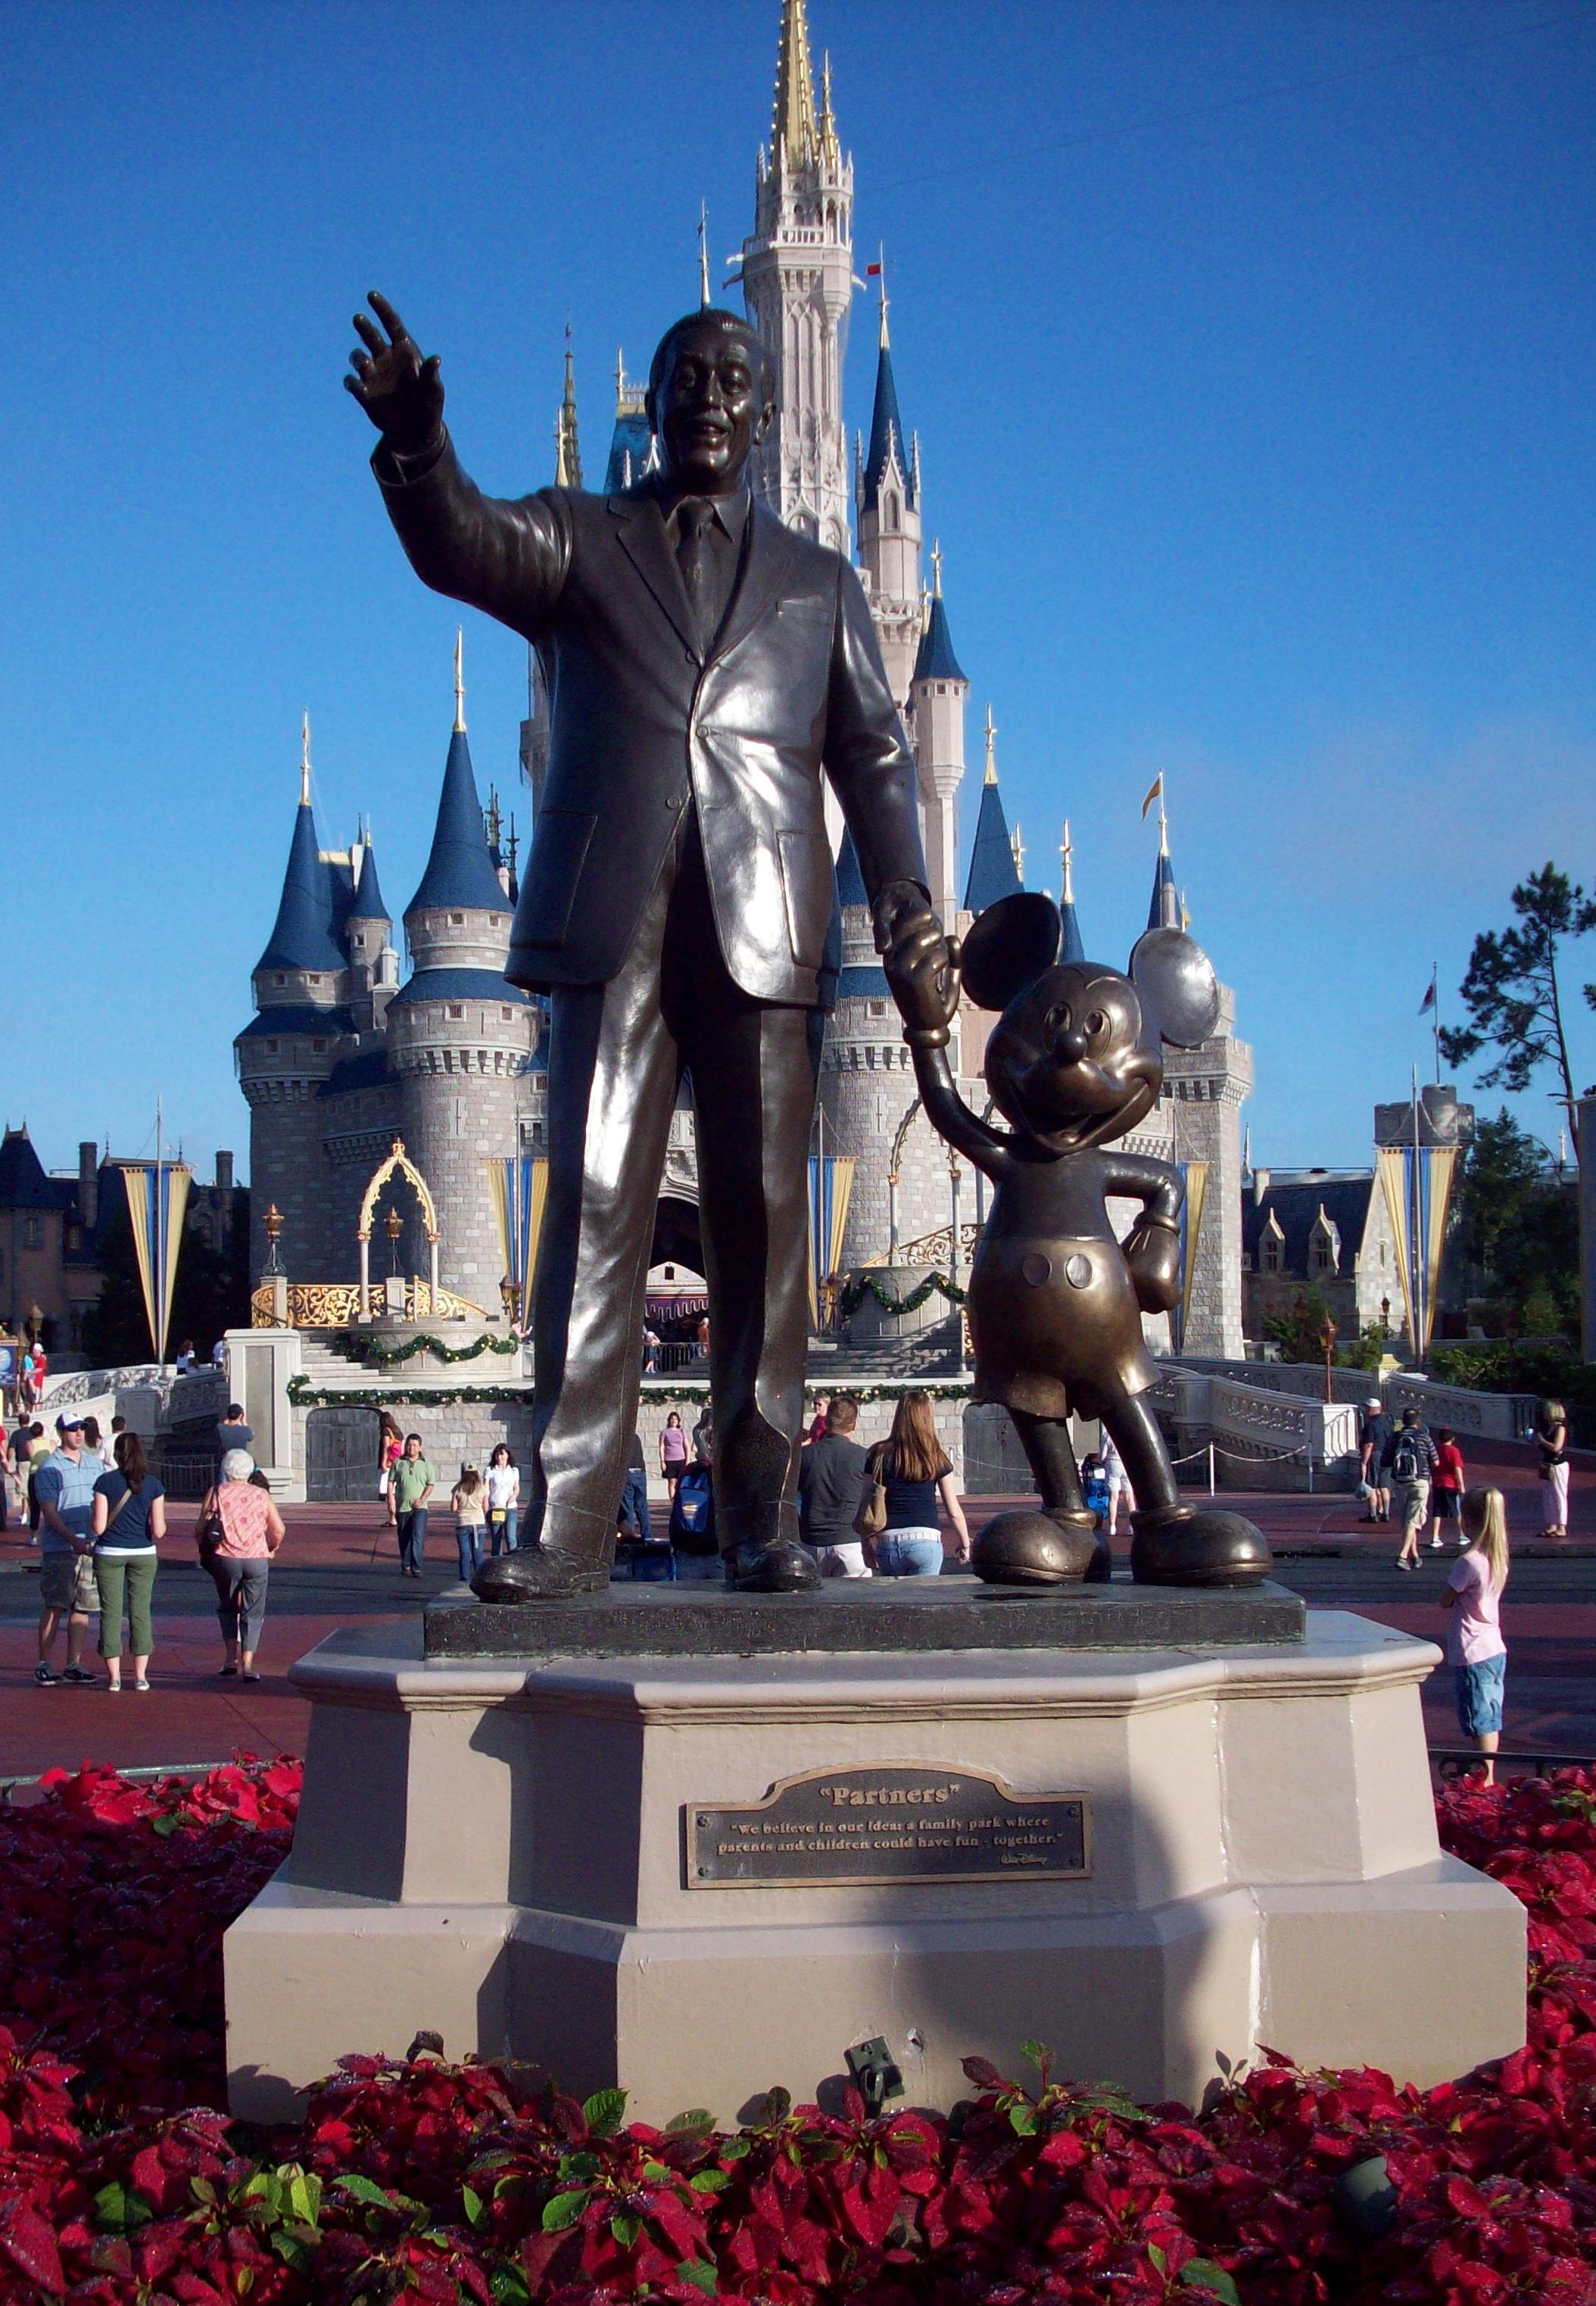 descriptive essay disney world Descriptive - disney world - best hq academic writings provided by top professionals essays & researches written by high class writers professional and affordable.